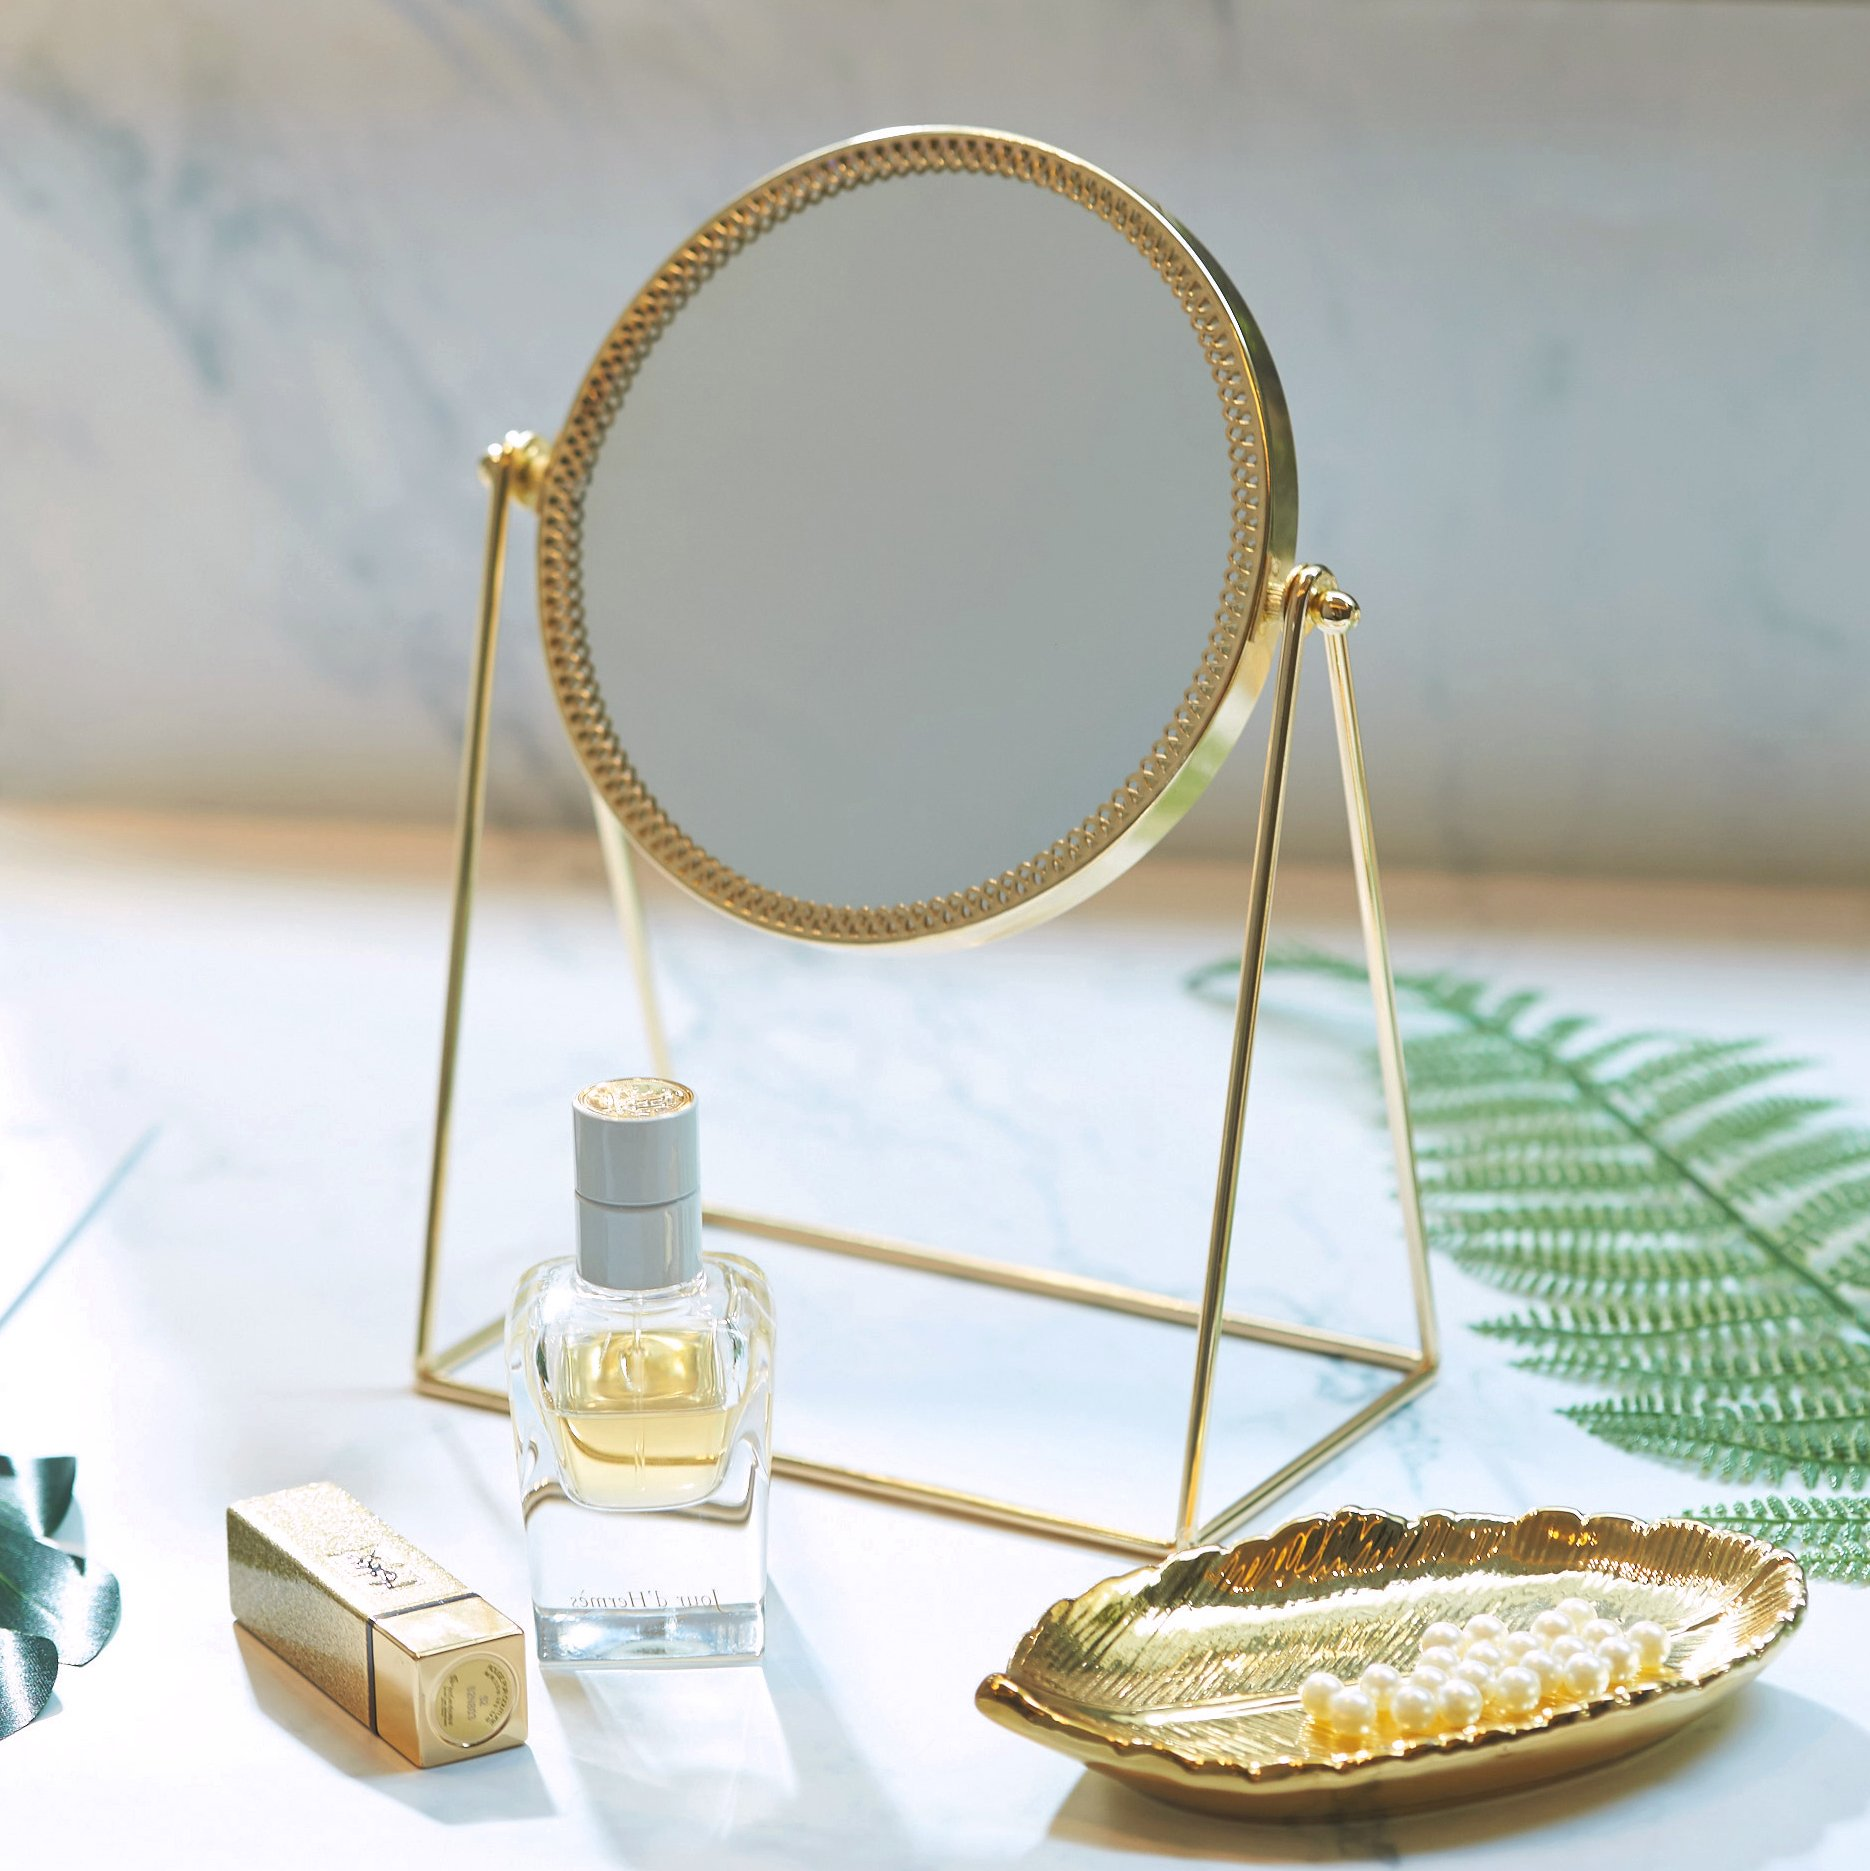 Cheap Remington Makeup Mirror Find Remington Makeup